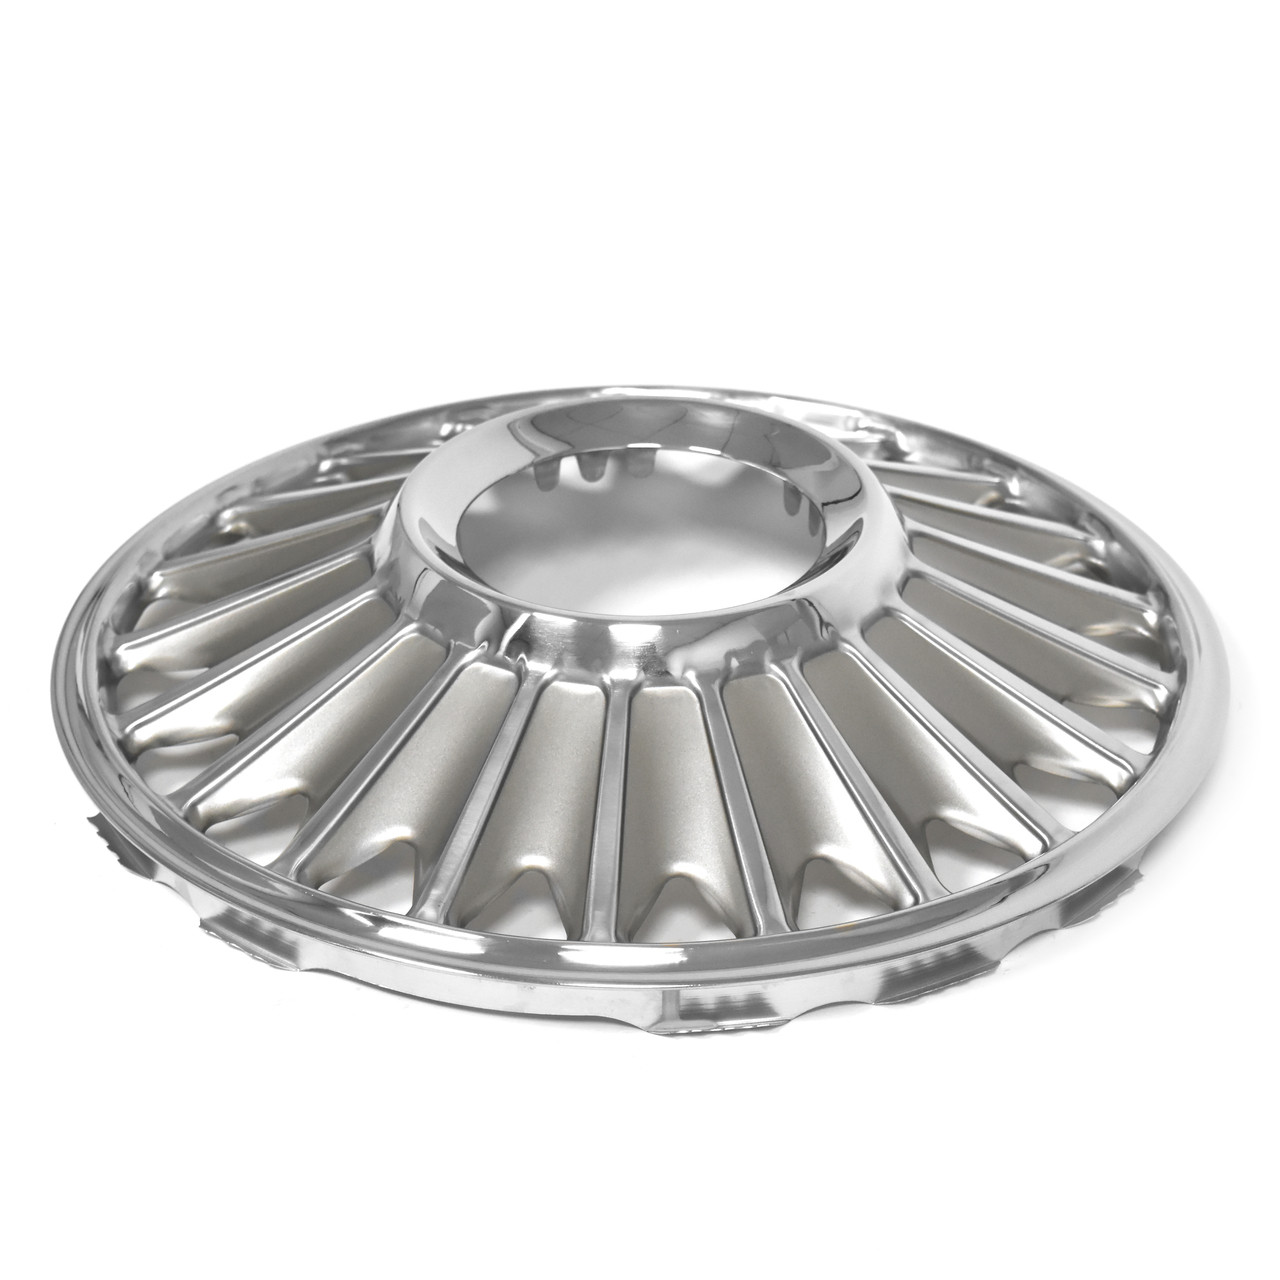 Wheel Cover 14 Inch Without Center [FM-BH017]